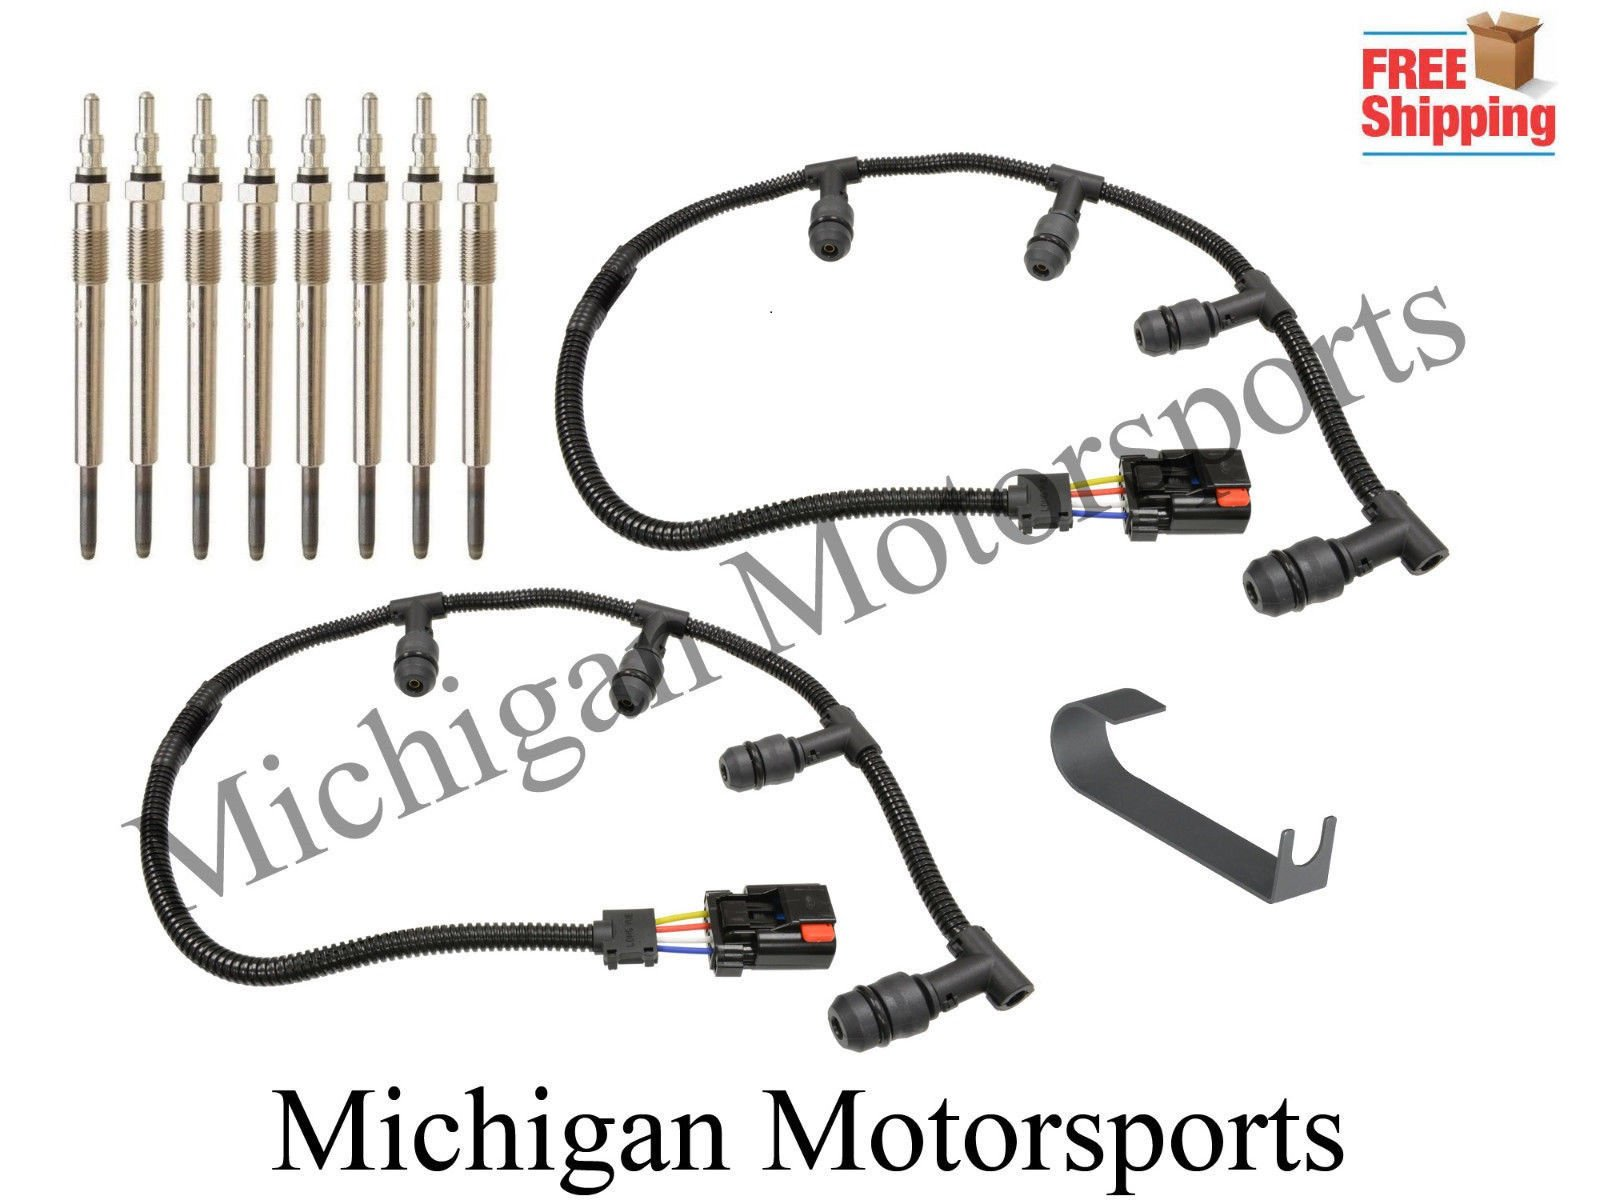 Michigan Motorsports Diesel Glow Plug Harness, Glow Plugs, and Tool - Fits Powerstroke Diesel 2004-2010 Ford 6.0